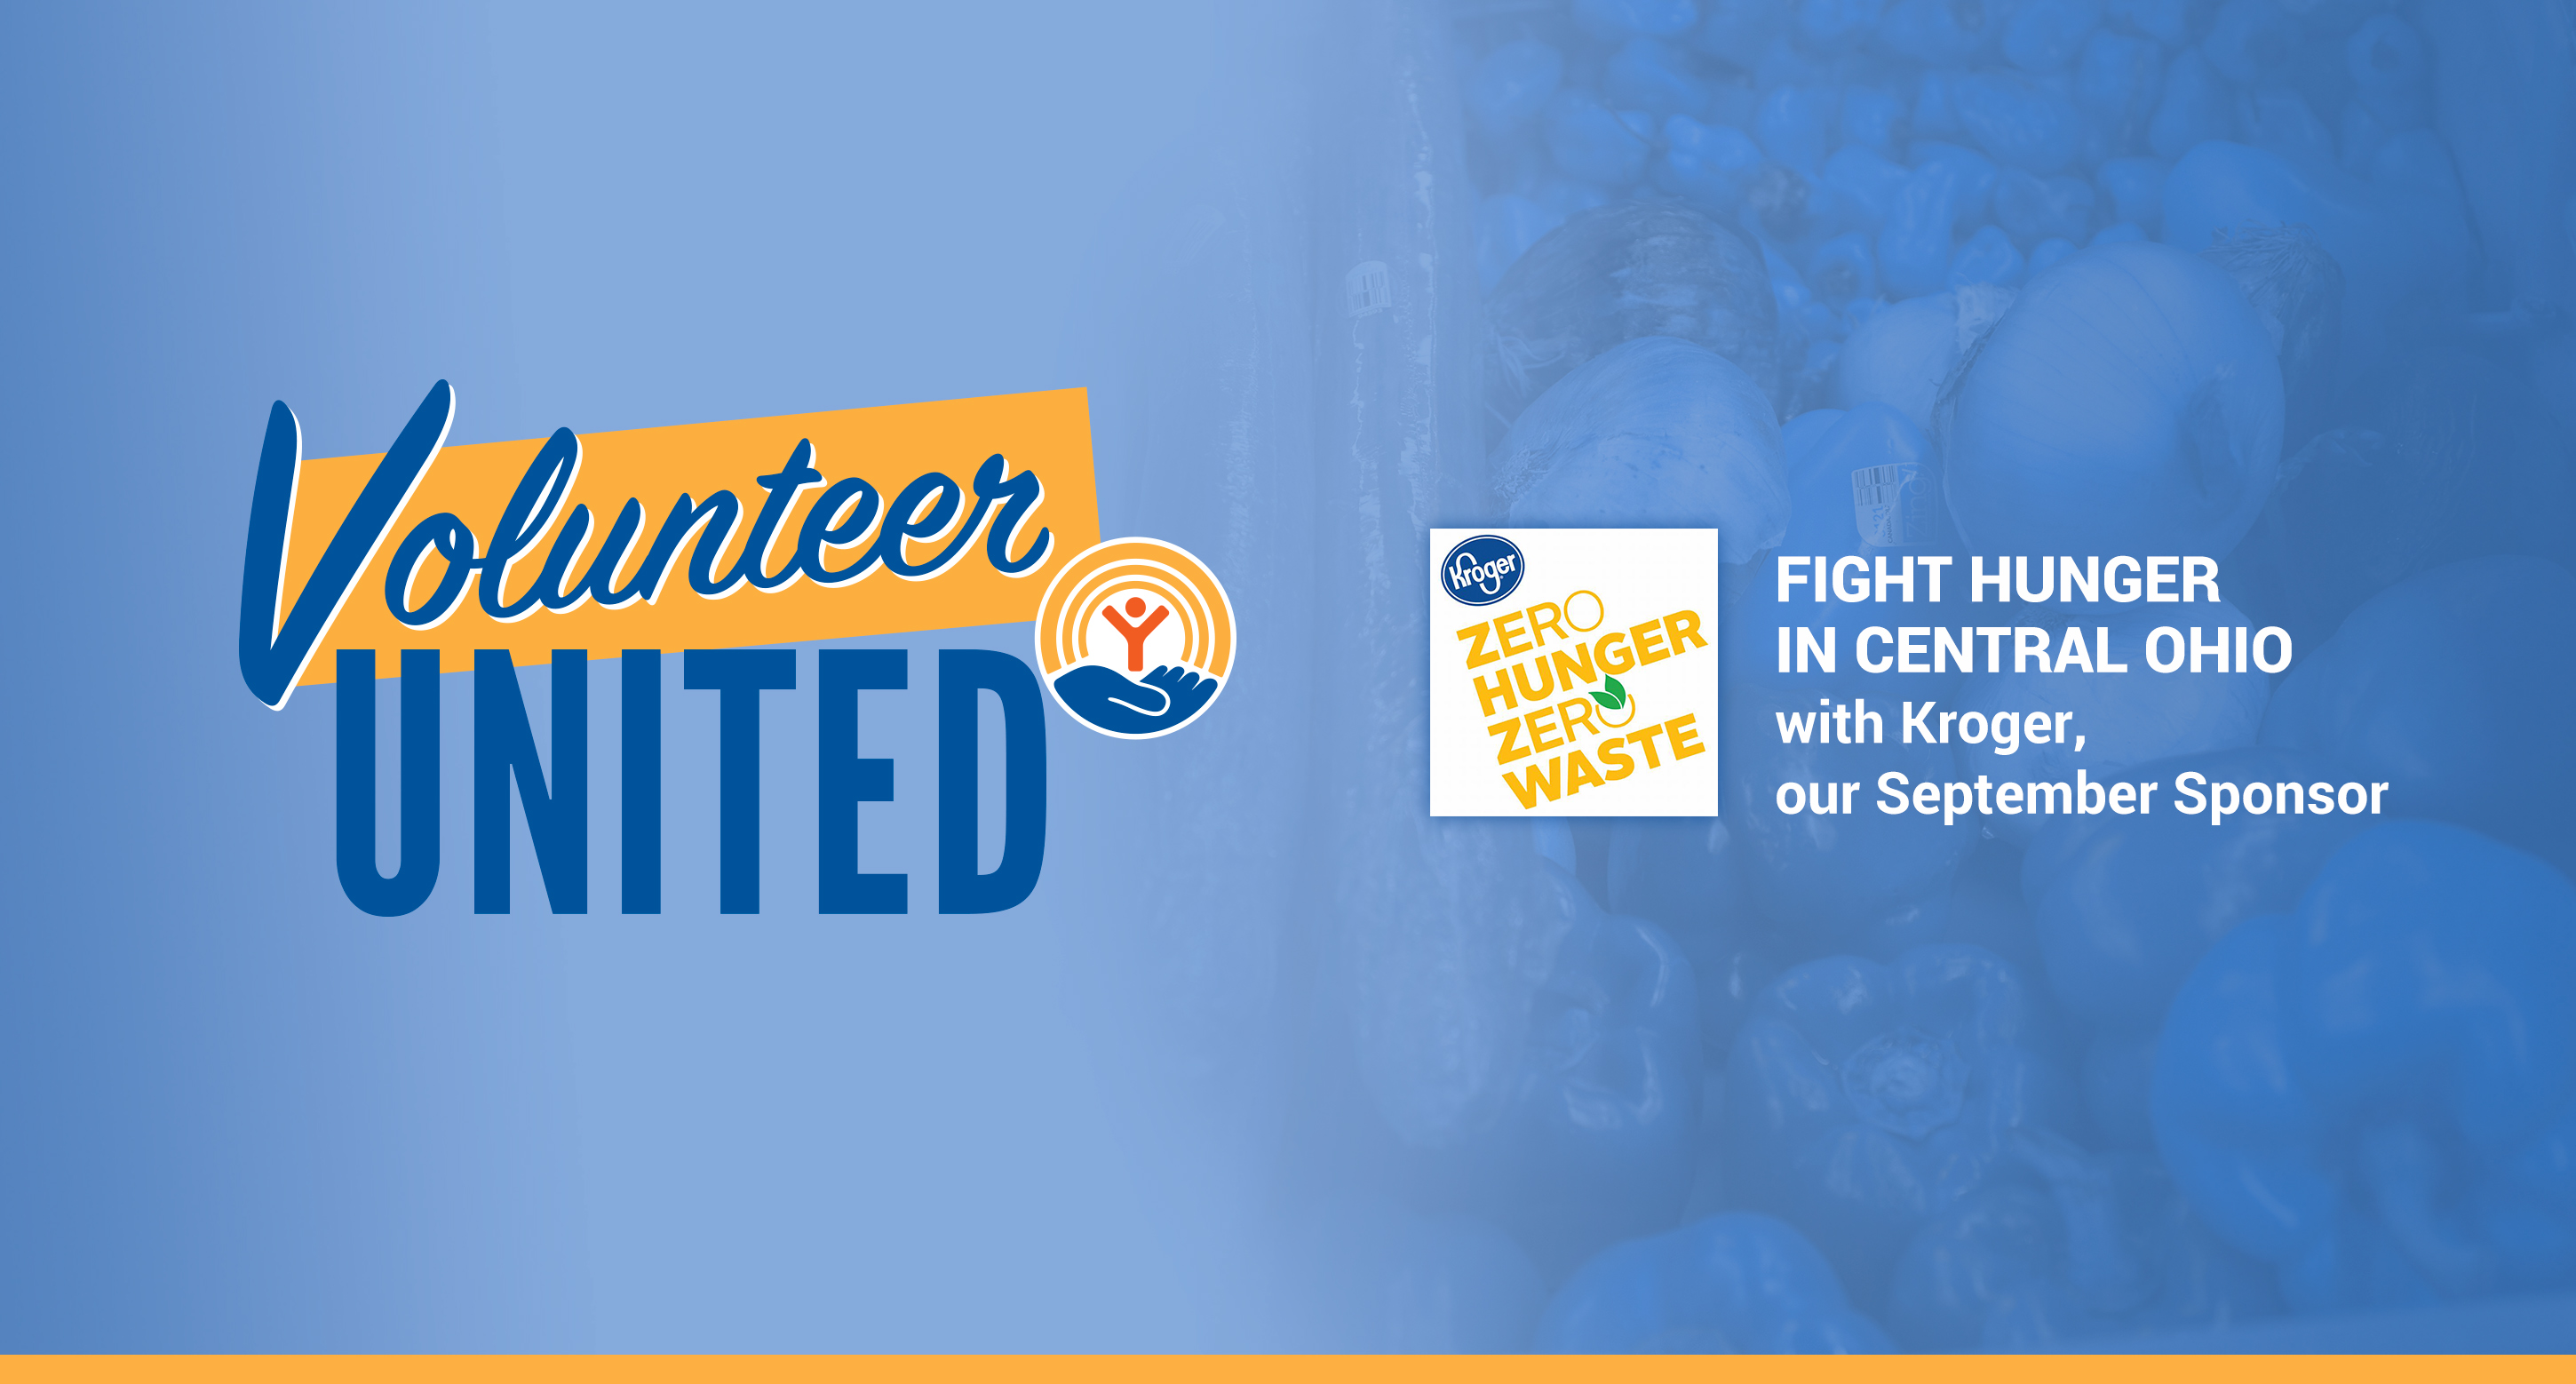 Home -United Way of Central Ohio